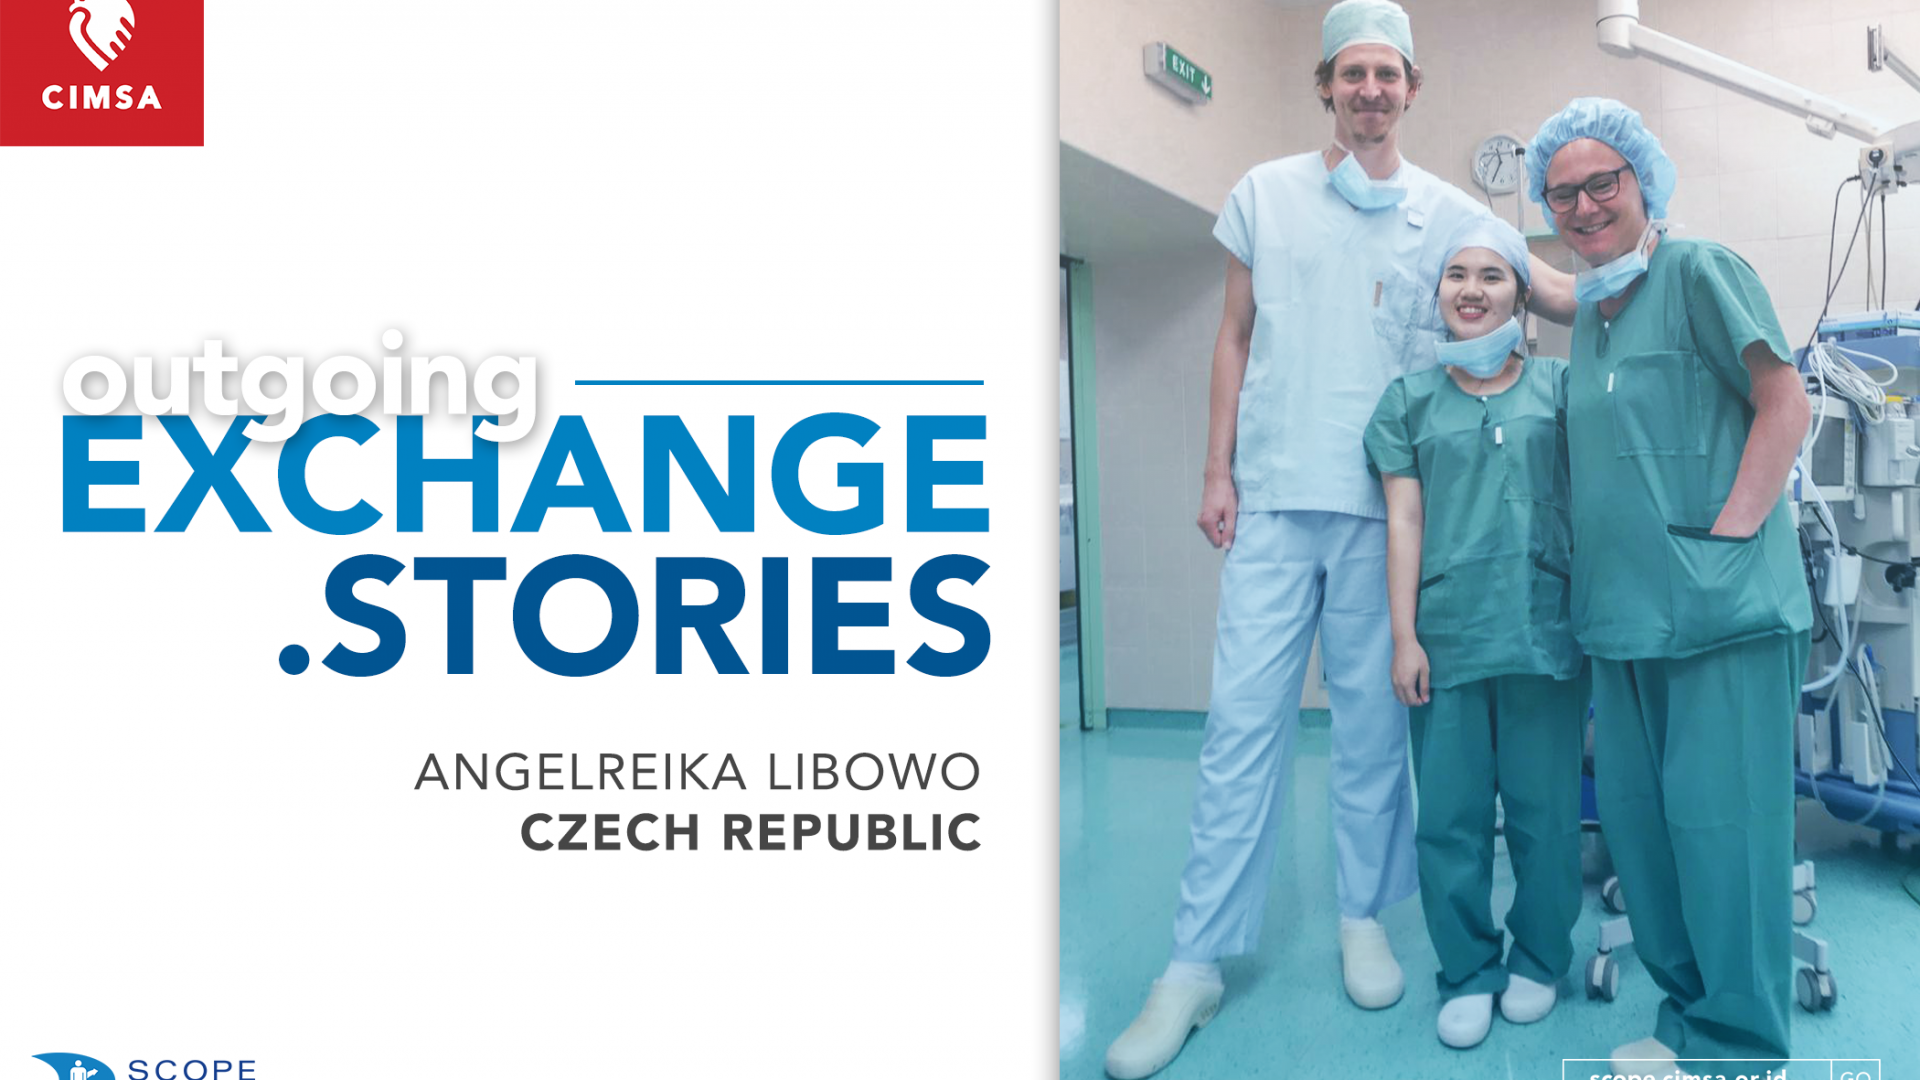 Outgoing Stories | New Life Experience in Czech Republic